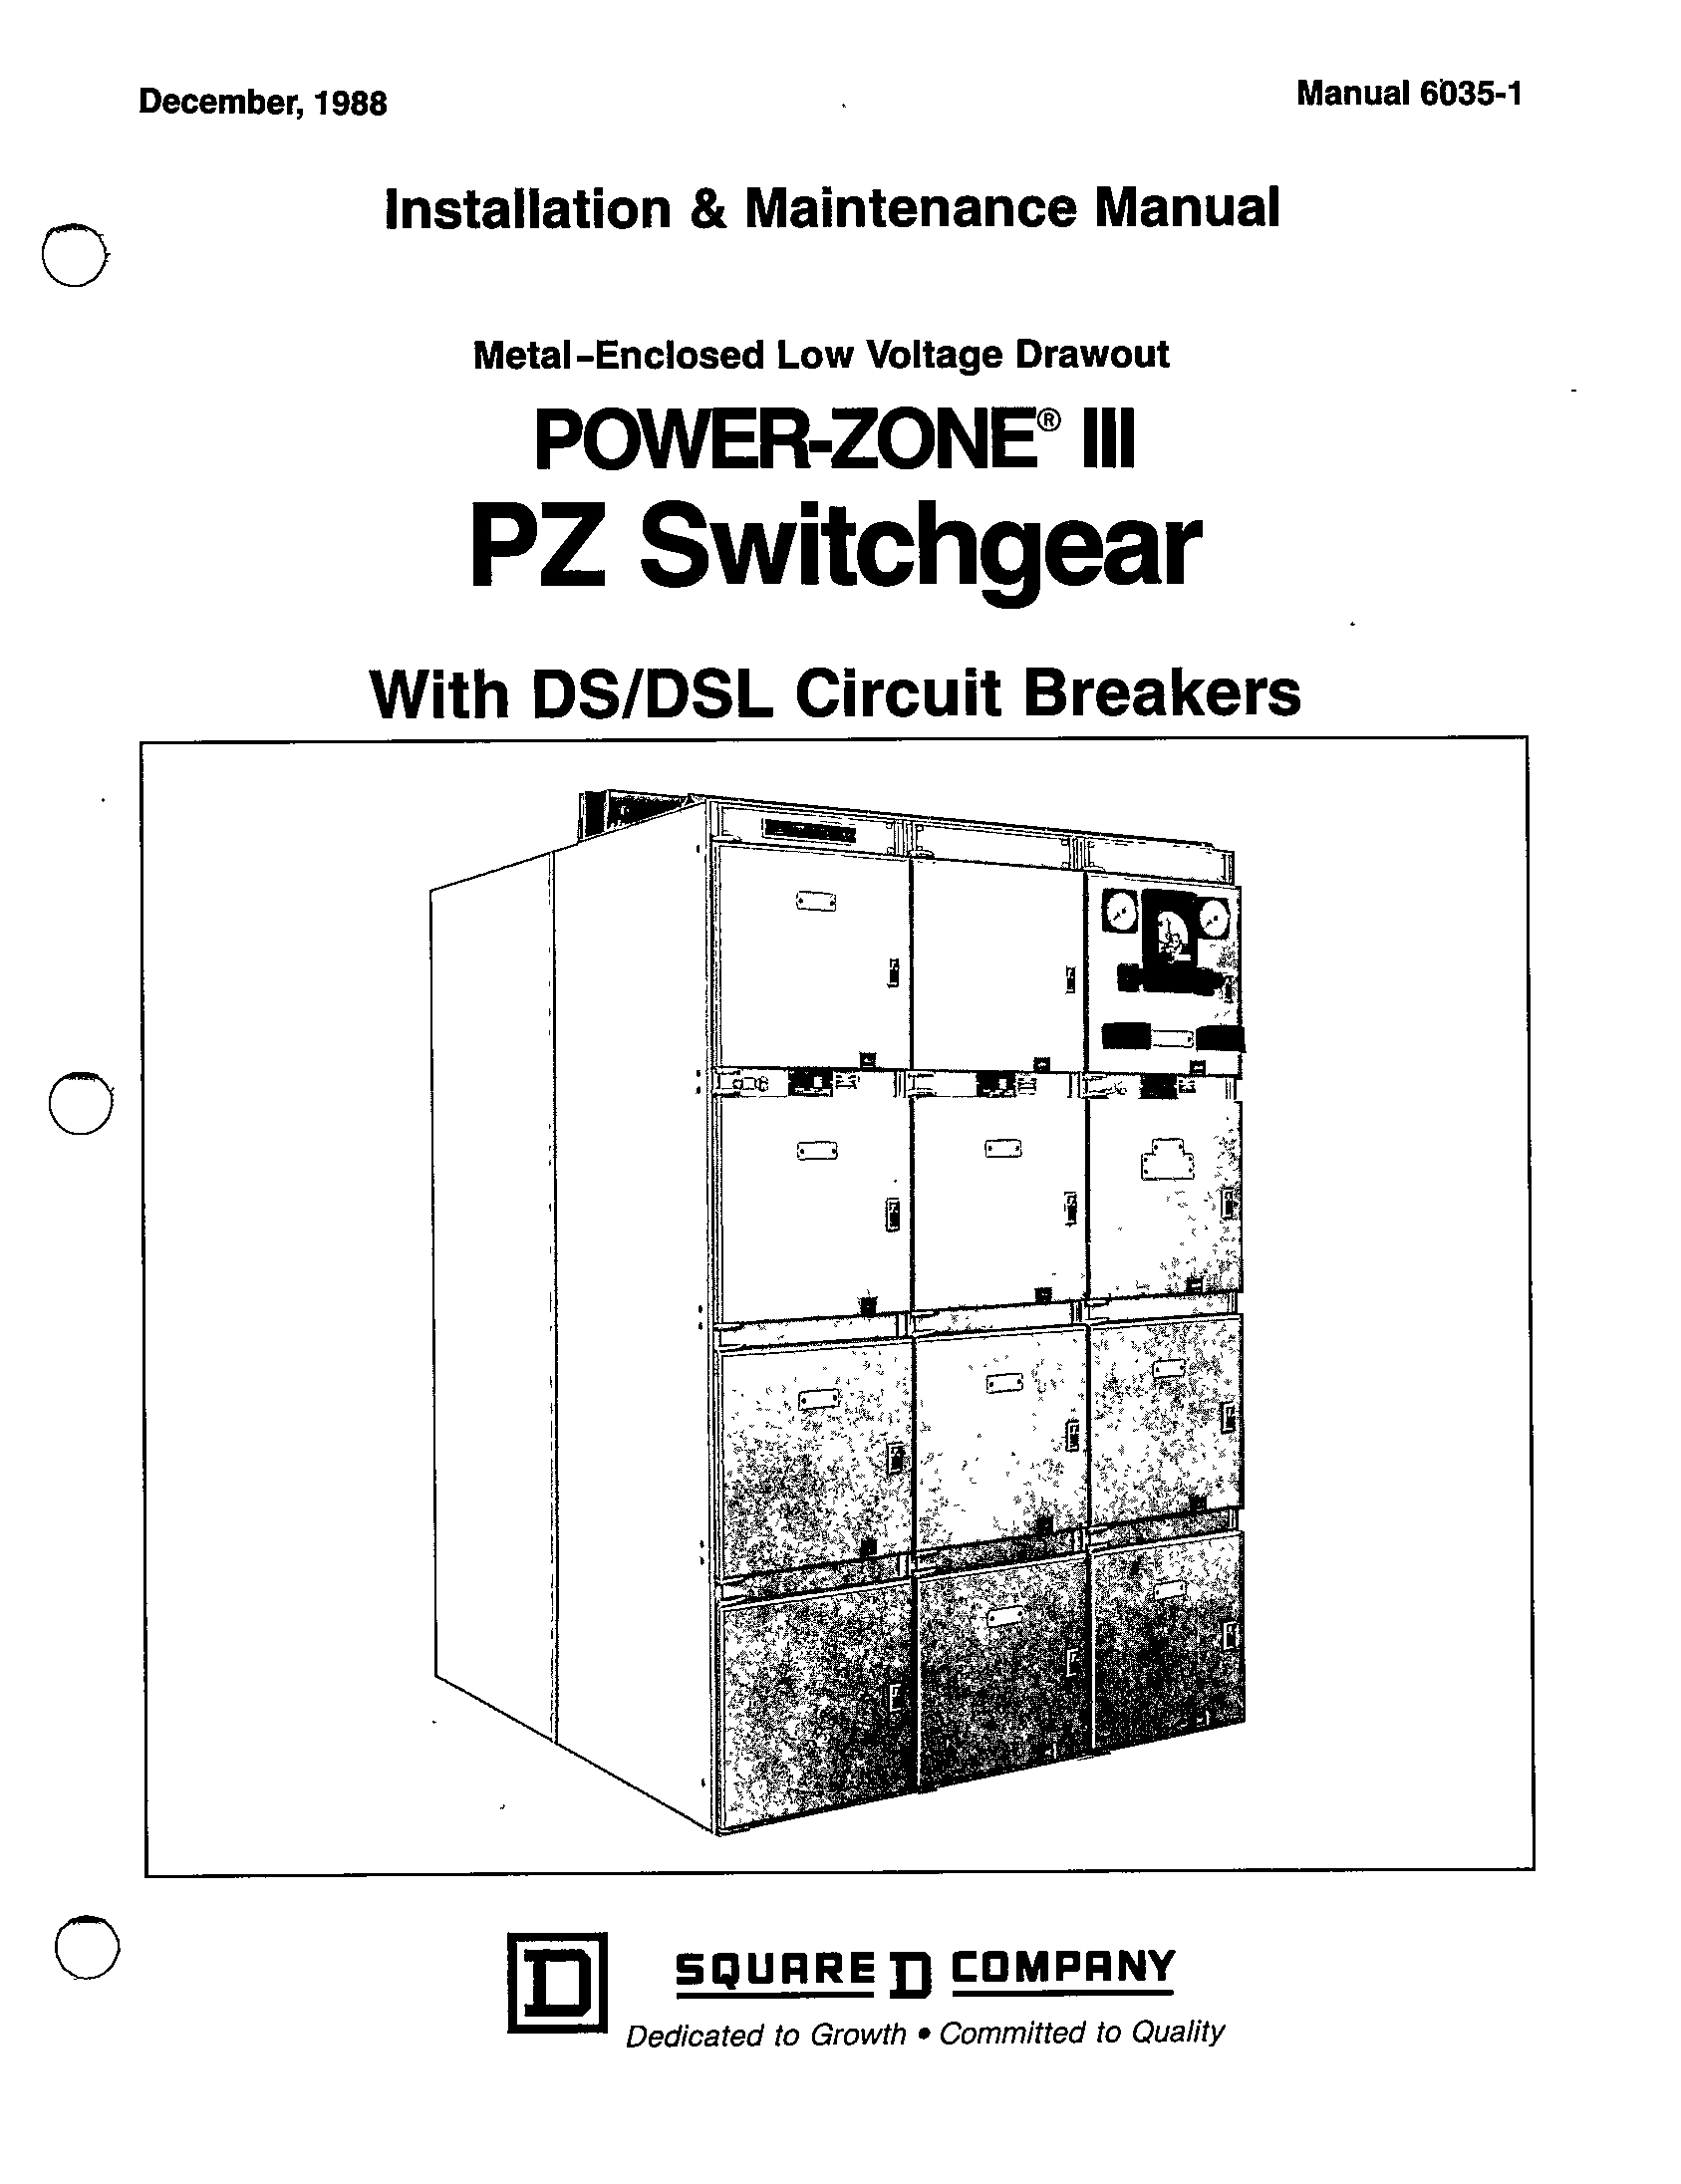 hight resolution of abb ai810 wiring diagram 6035 1 metal enclosed low vole drawout power zone iii pz